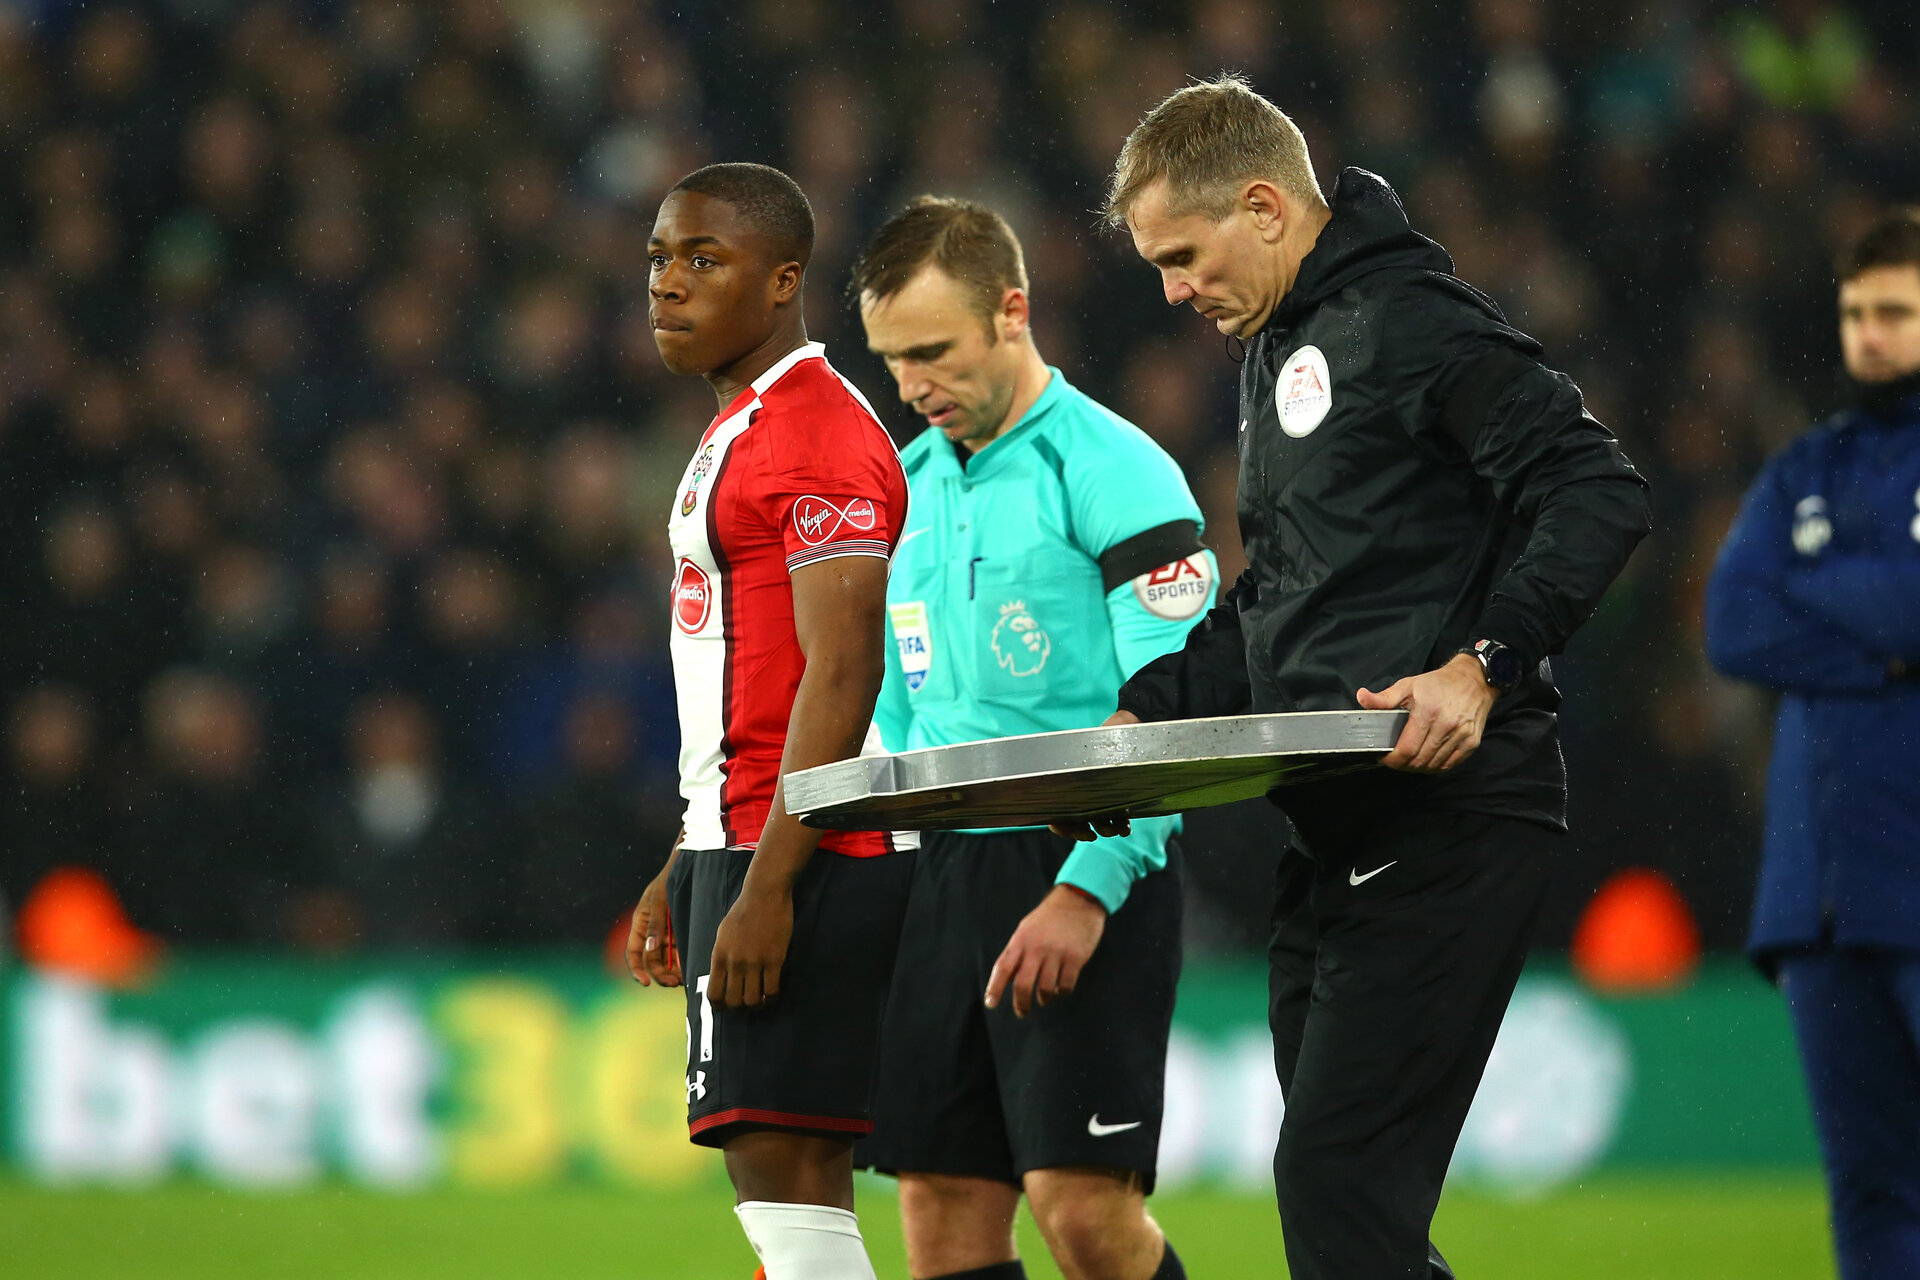 SOUTHAMPTON, ENGLAND - JANUARY 21: Michael Obafemi comes on during the second half of the Premier League match between Southampton and Tottenham Hotspur at St Mary's Stadium on January 20, 2018 in Southampton, England. (Photo by James Bridle - Southampton FC/Southampton FC via Getty Images)